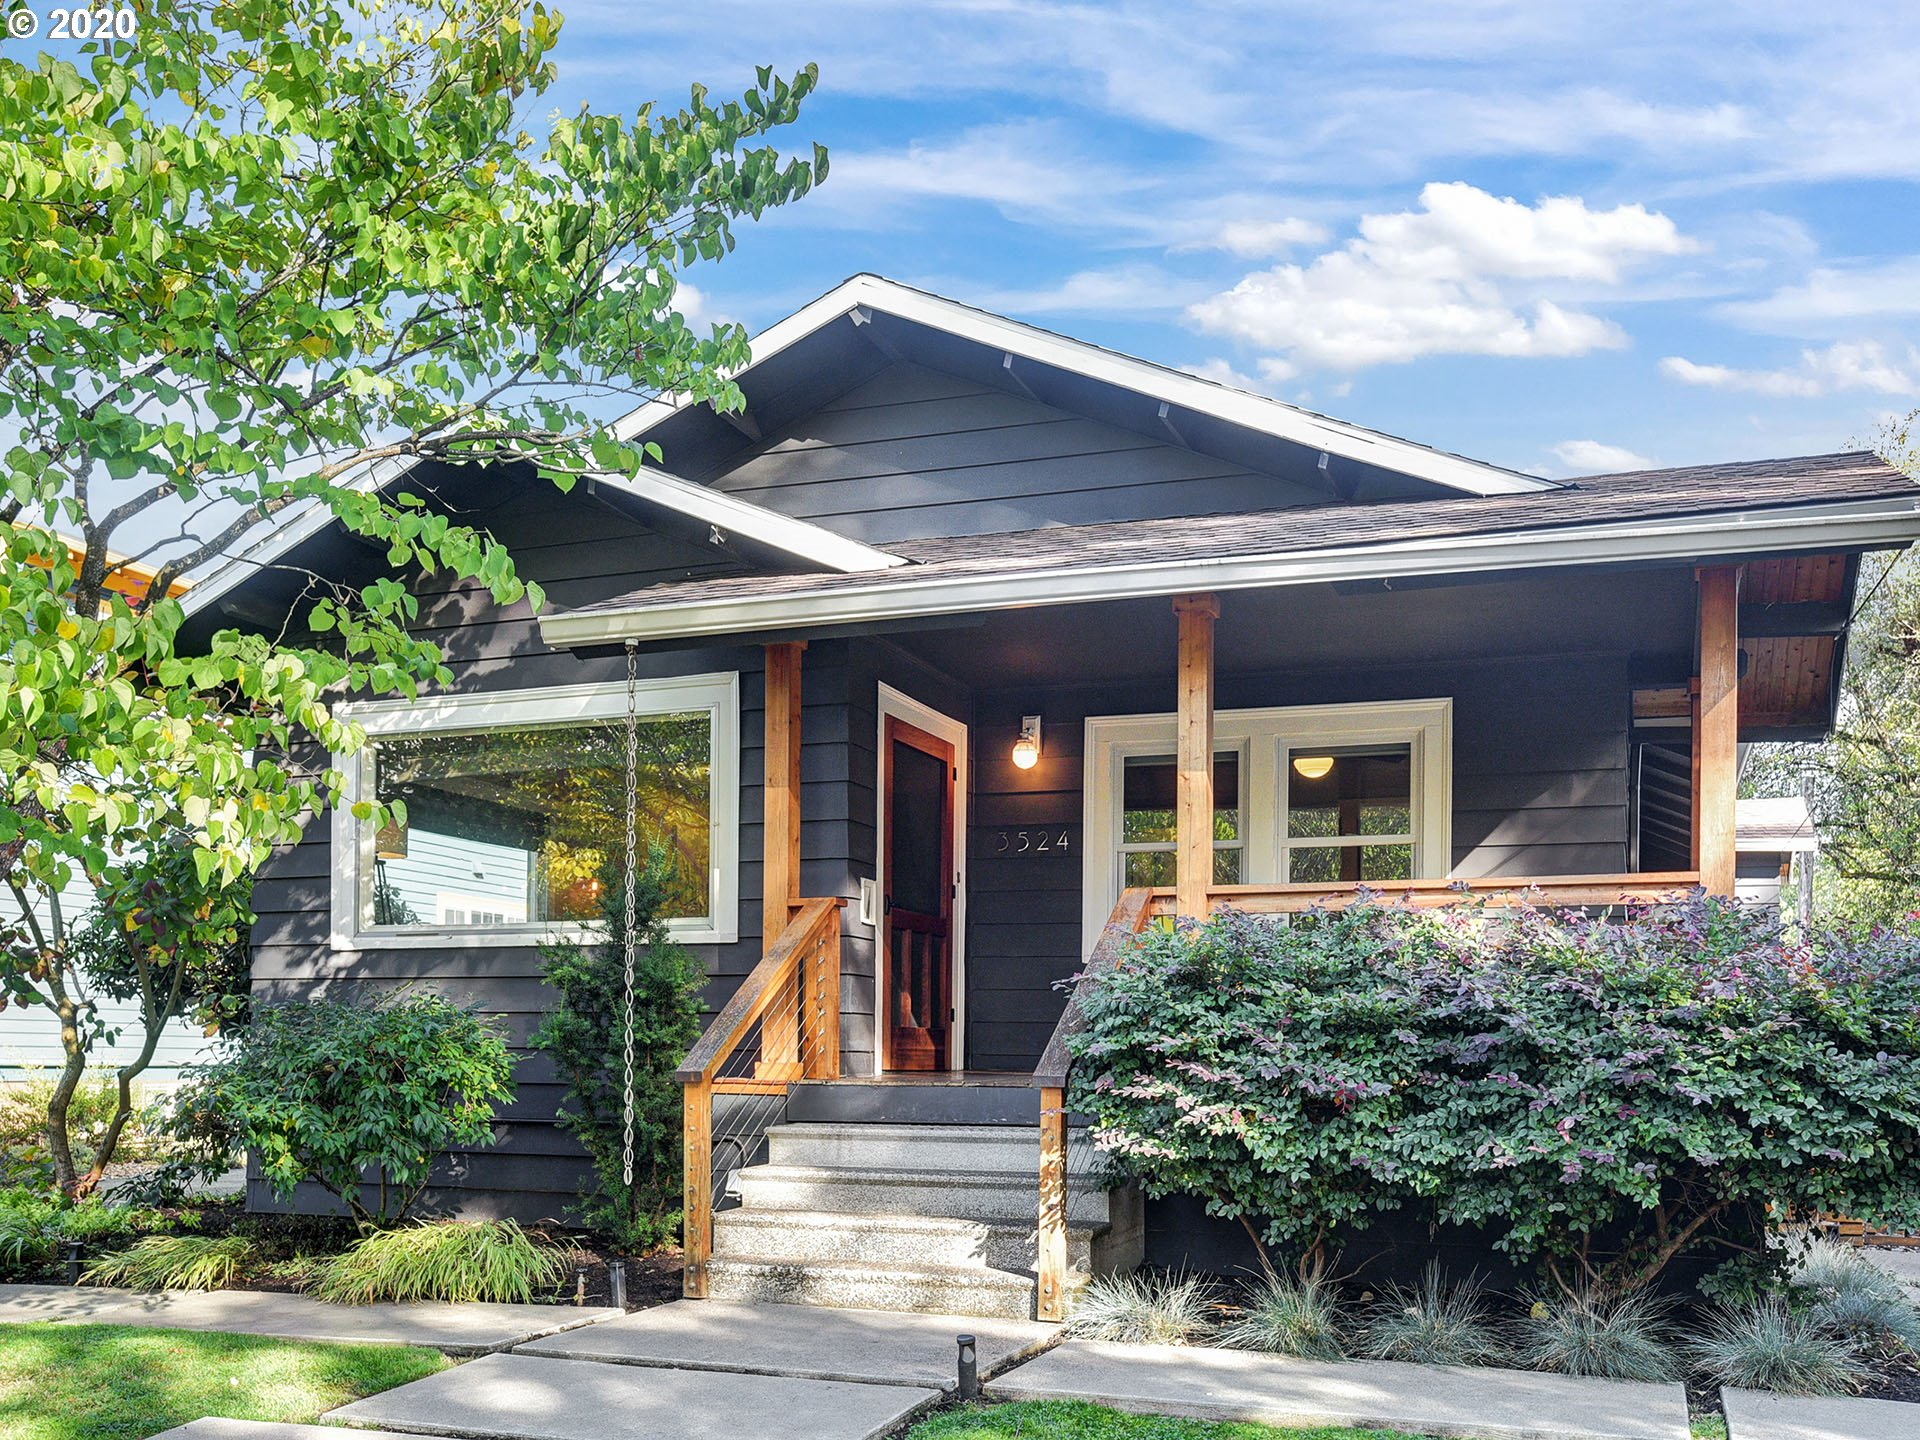 *Open Sunday,10/18 1pm-3pm. Masks required* Beautiful 1923 vintage bungalow on gorgeous 17th Ave. blocks to parks, restaurants, boutiques,& shopping.Feats an inviting front porch, refinished hardwood flooring, formal living & dining room w/built-ins, Large updated kitchen w/vaulted breakfast nook, new luxury vinyl plank floors,& blt-in table and bench. Great floor plan with 3 bedrooms on the main & bonus guest room and full bath below. [Home Energy Score = 4. HES Report at https://rpt.greenbuildingregistry.com/hes/OR10185613]